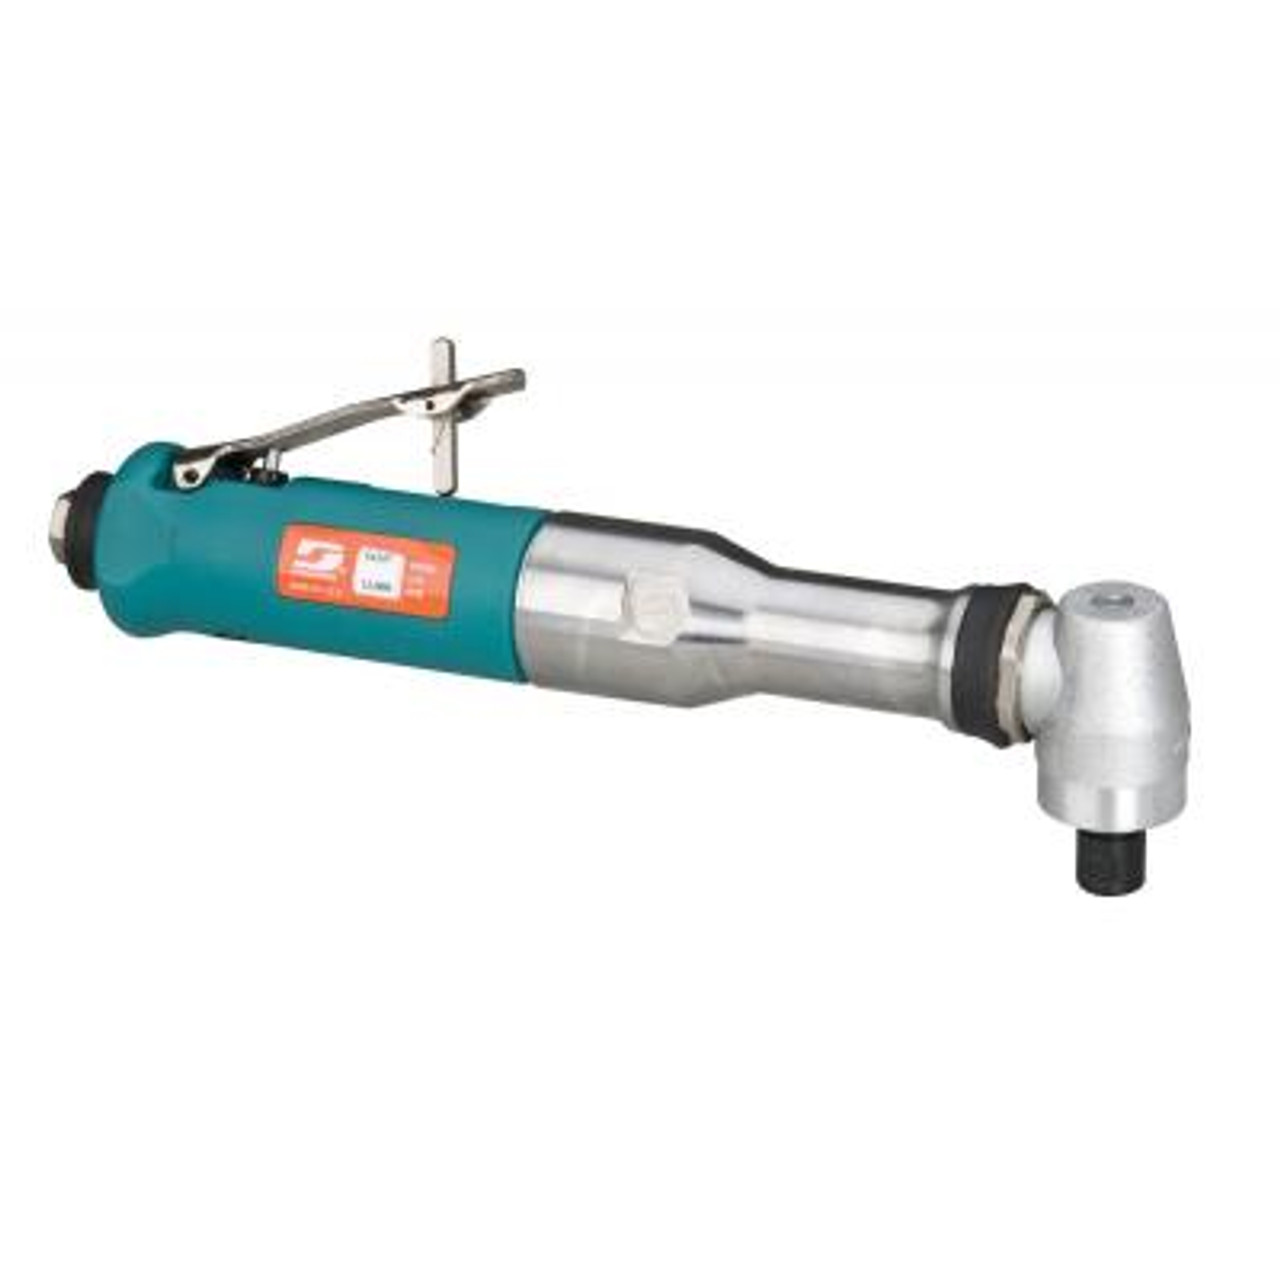 DYNABRADE Air Die Grinder,Straight,12,000 rpm 52666